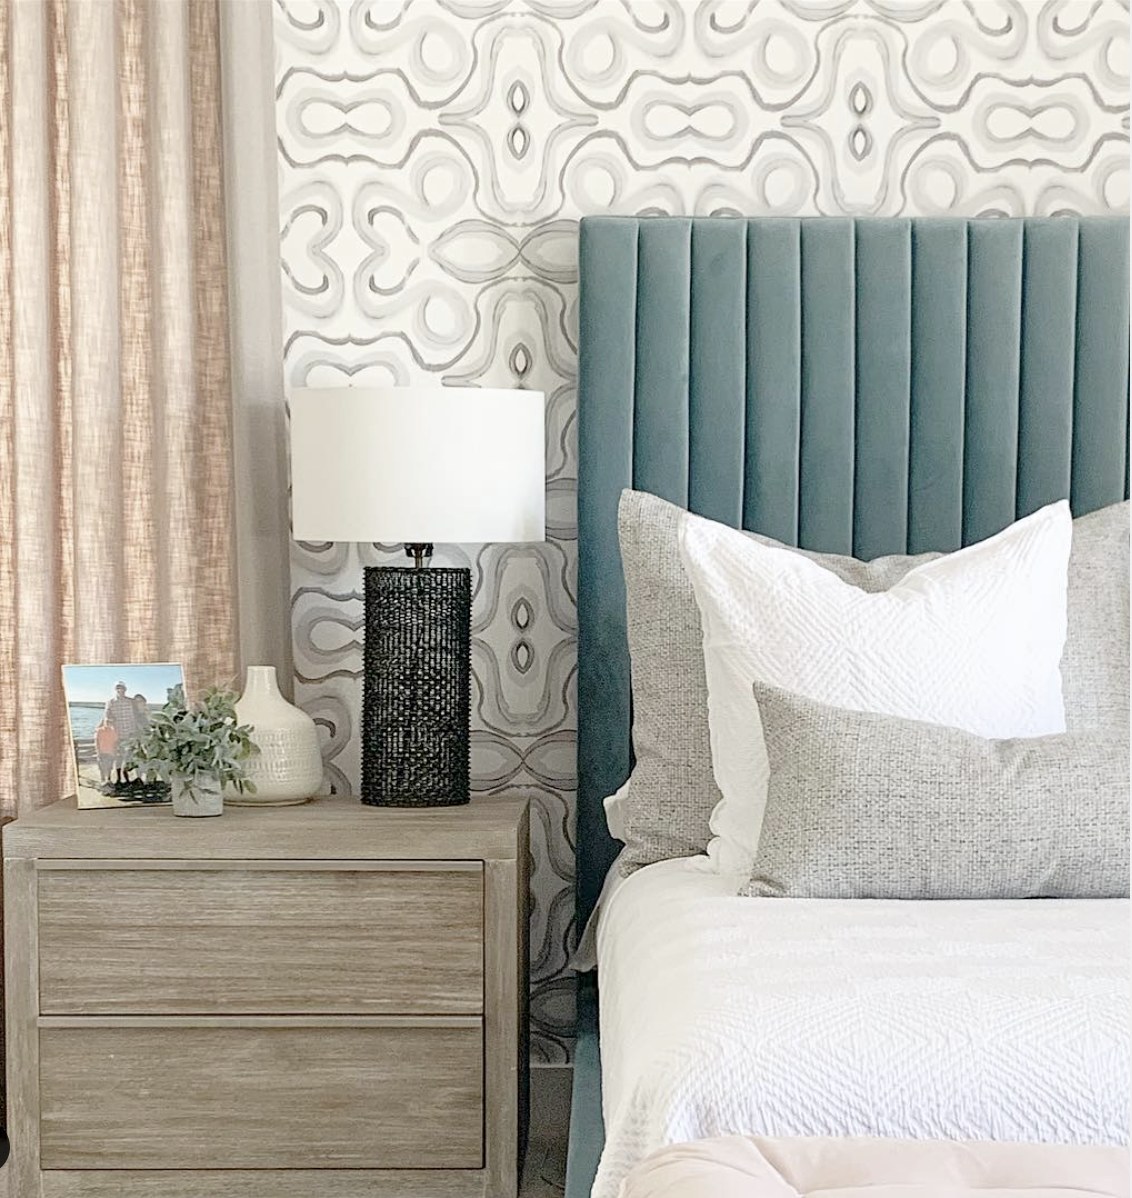 wallpaper accent wall behind bed, aqua blue velvet headboard, beige trimmed drapes, arizona bedroom design